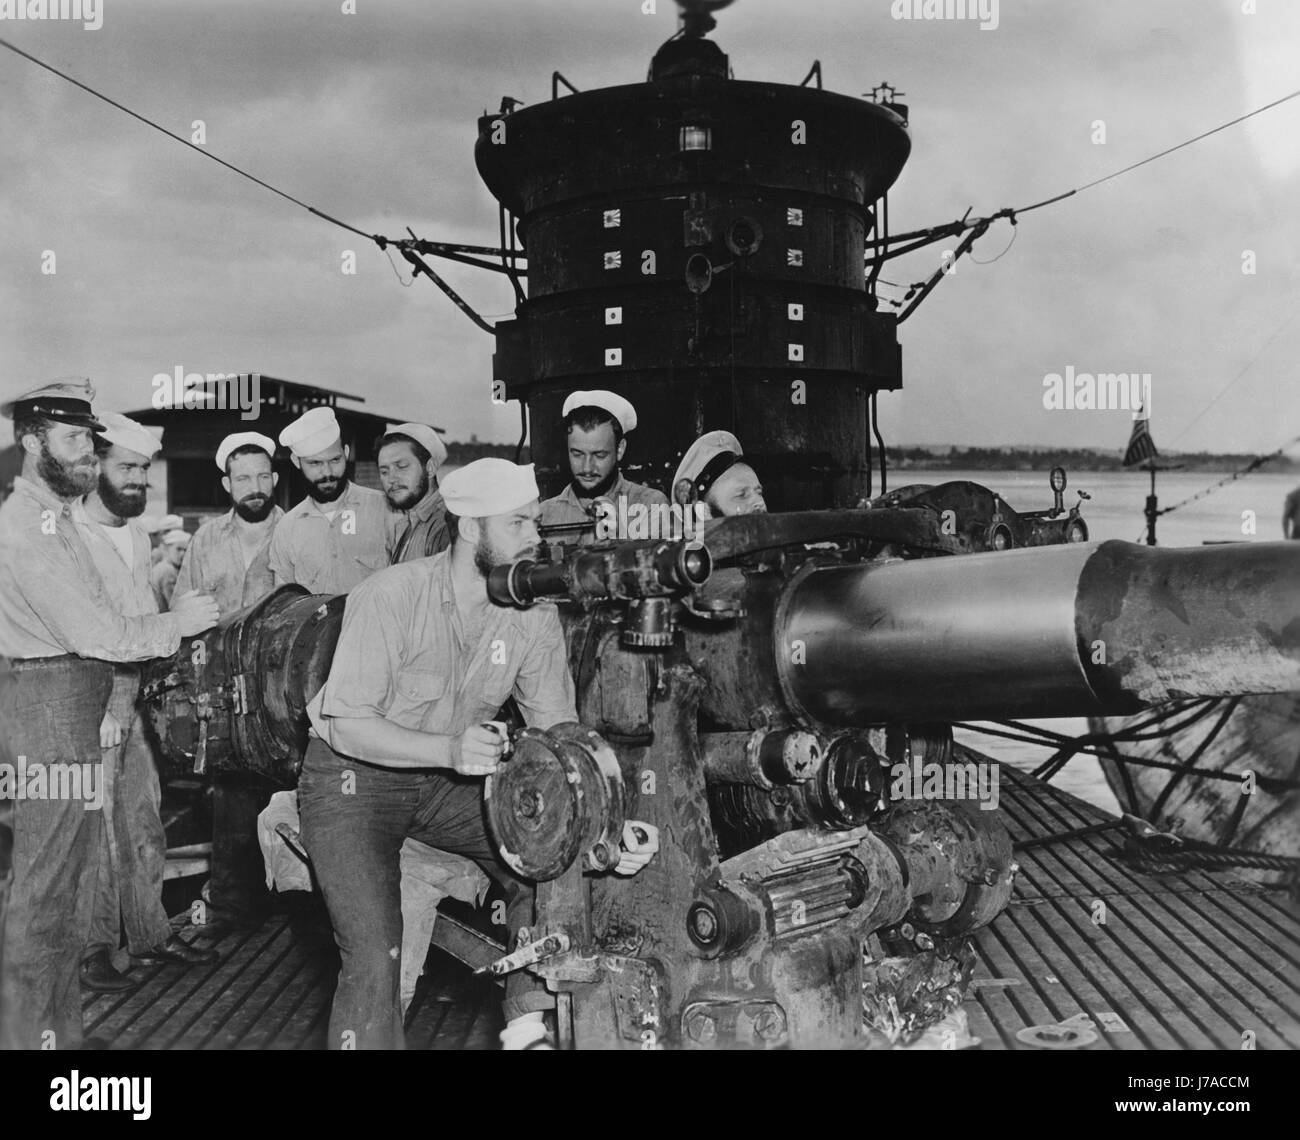 Crewmembers aboard USS S-44 manning the submarine's 4/50 caliber deck gun, 1943. - Stock Image